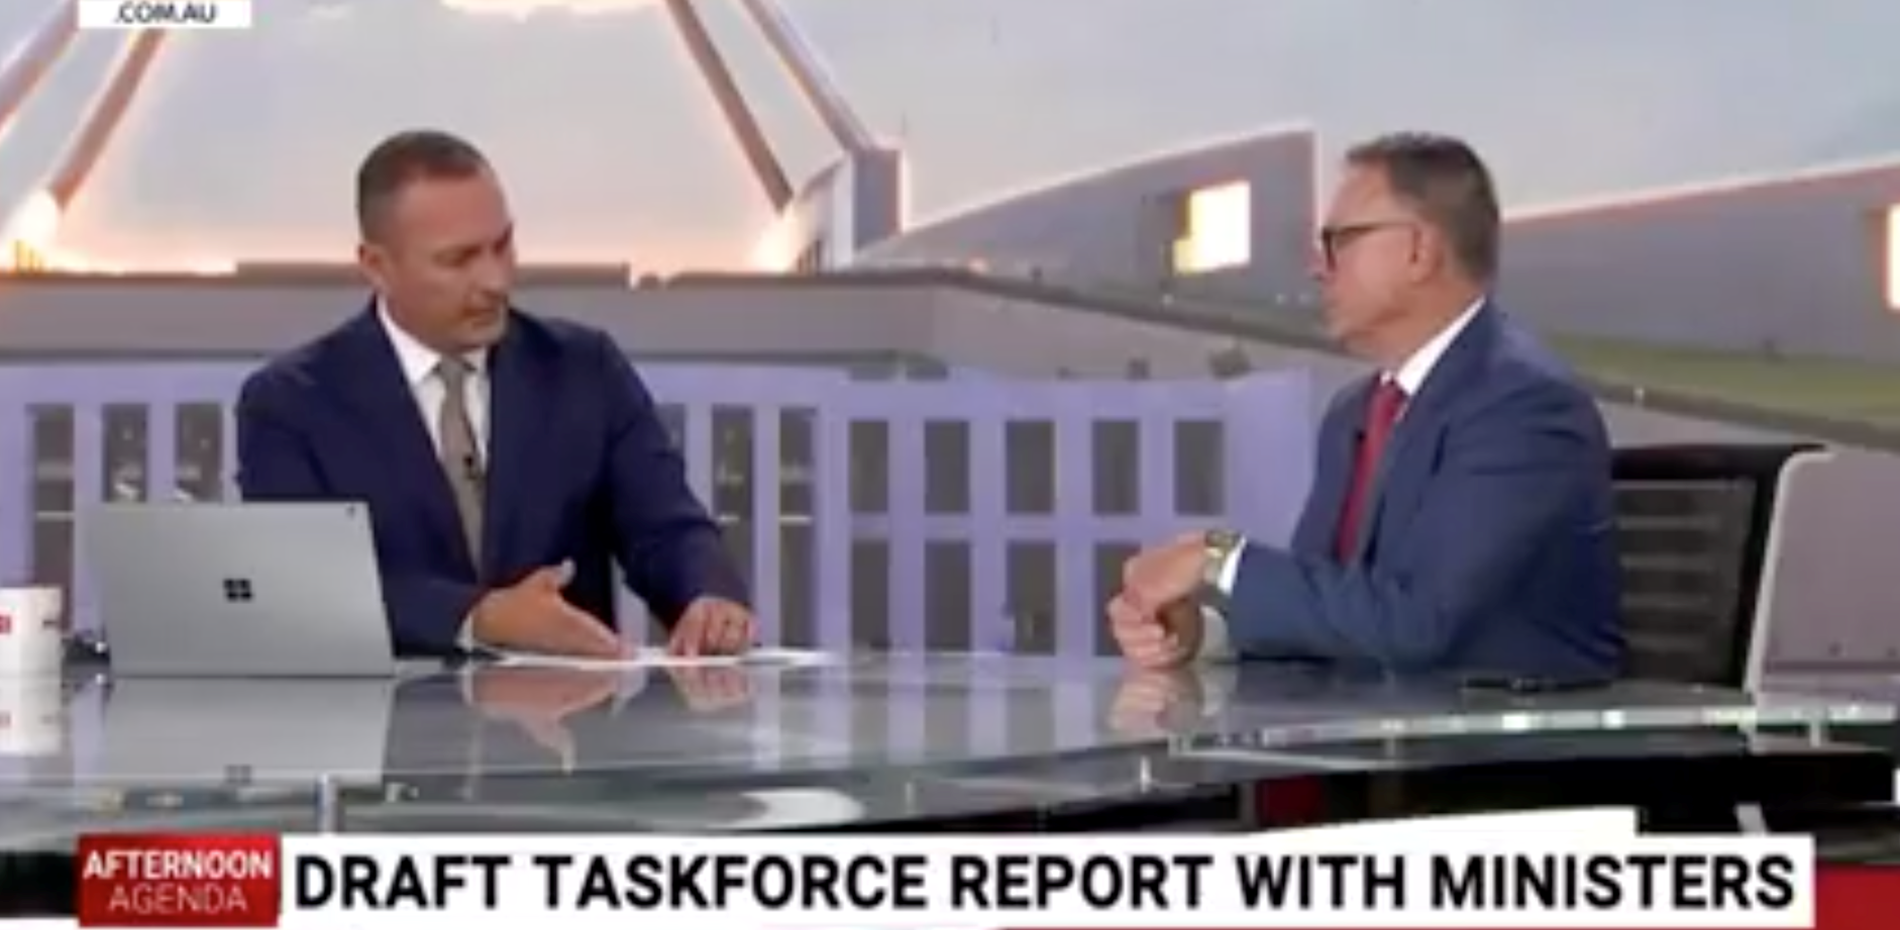 Transcript - Sky News with Kieran Gilbert - Monday, 10 February 2020 Main Image